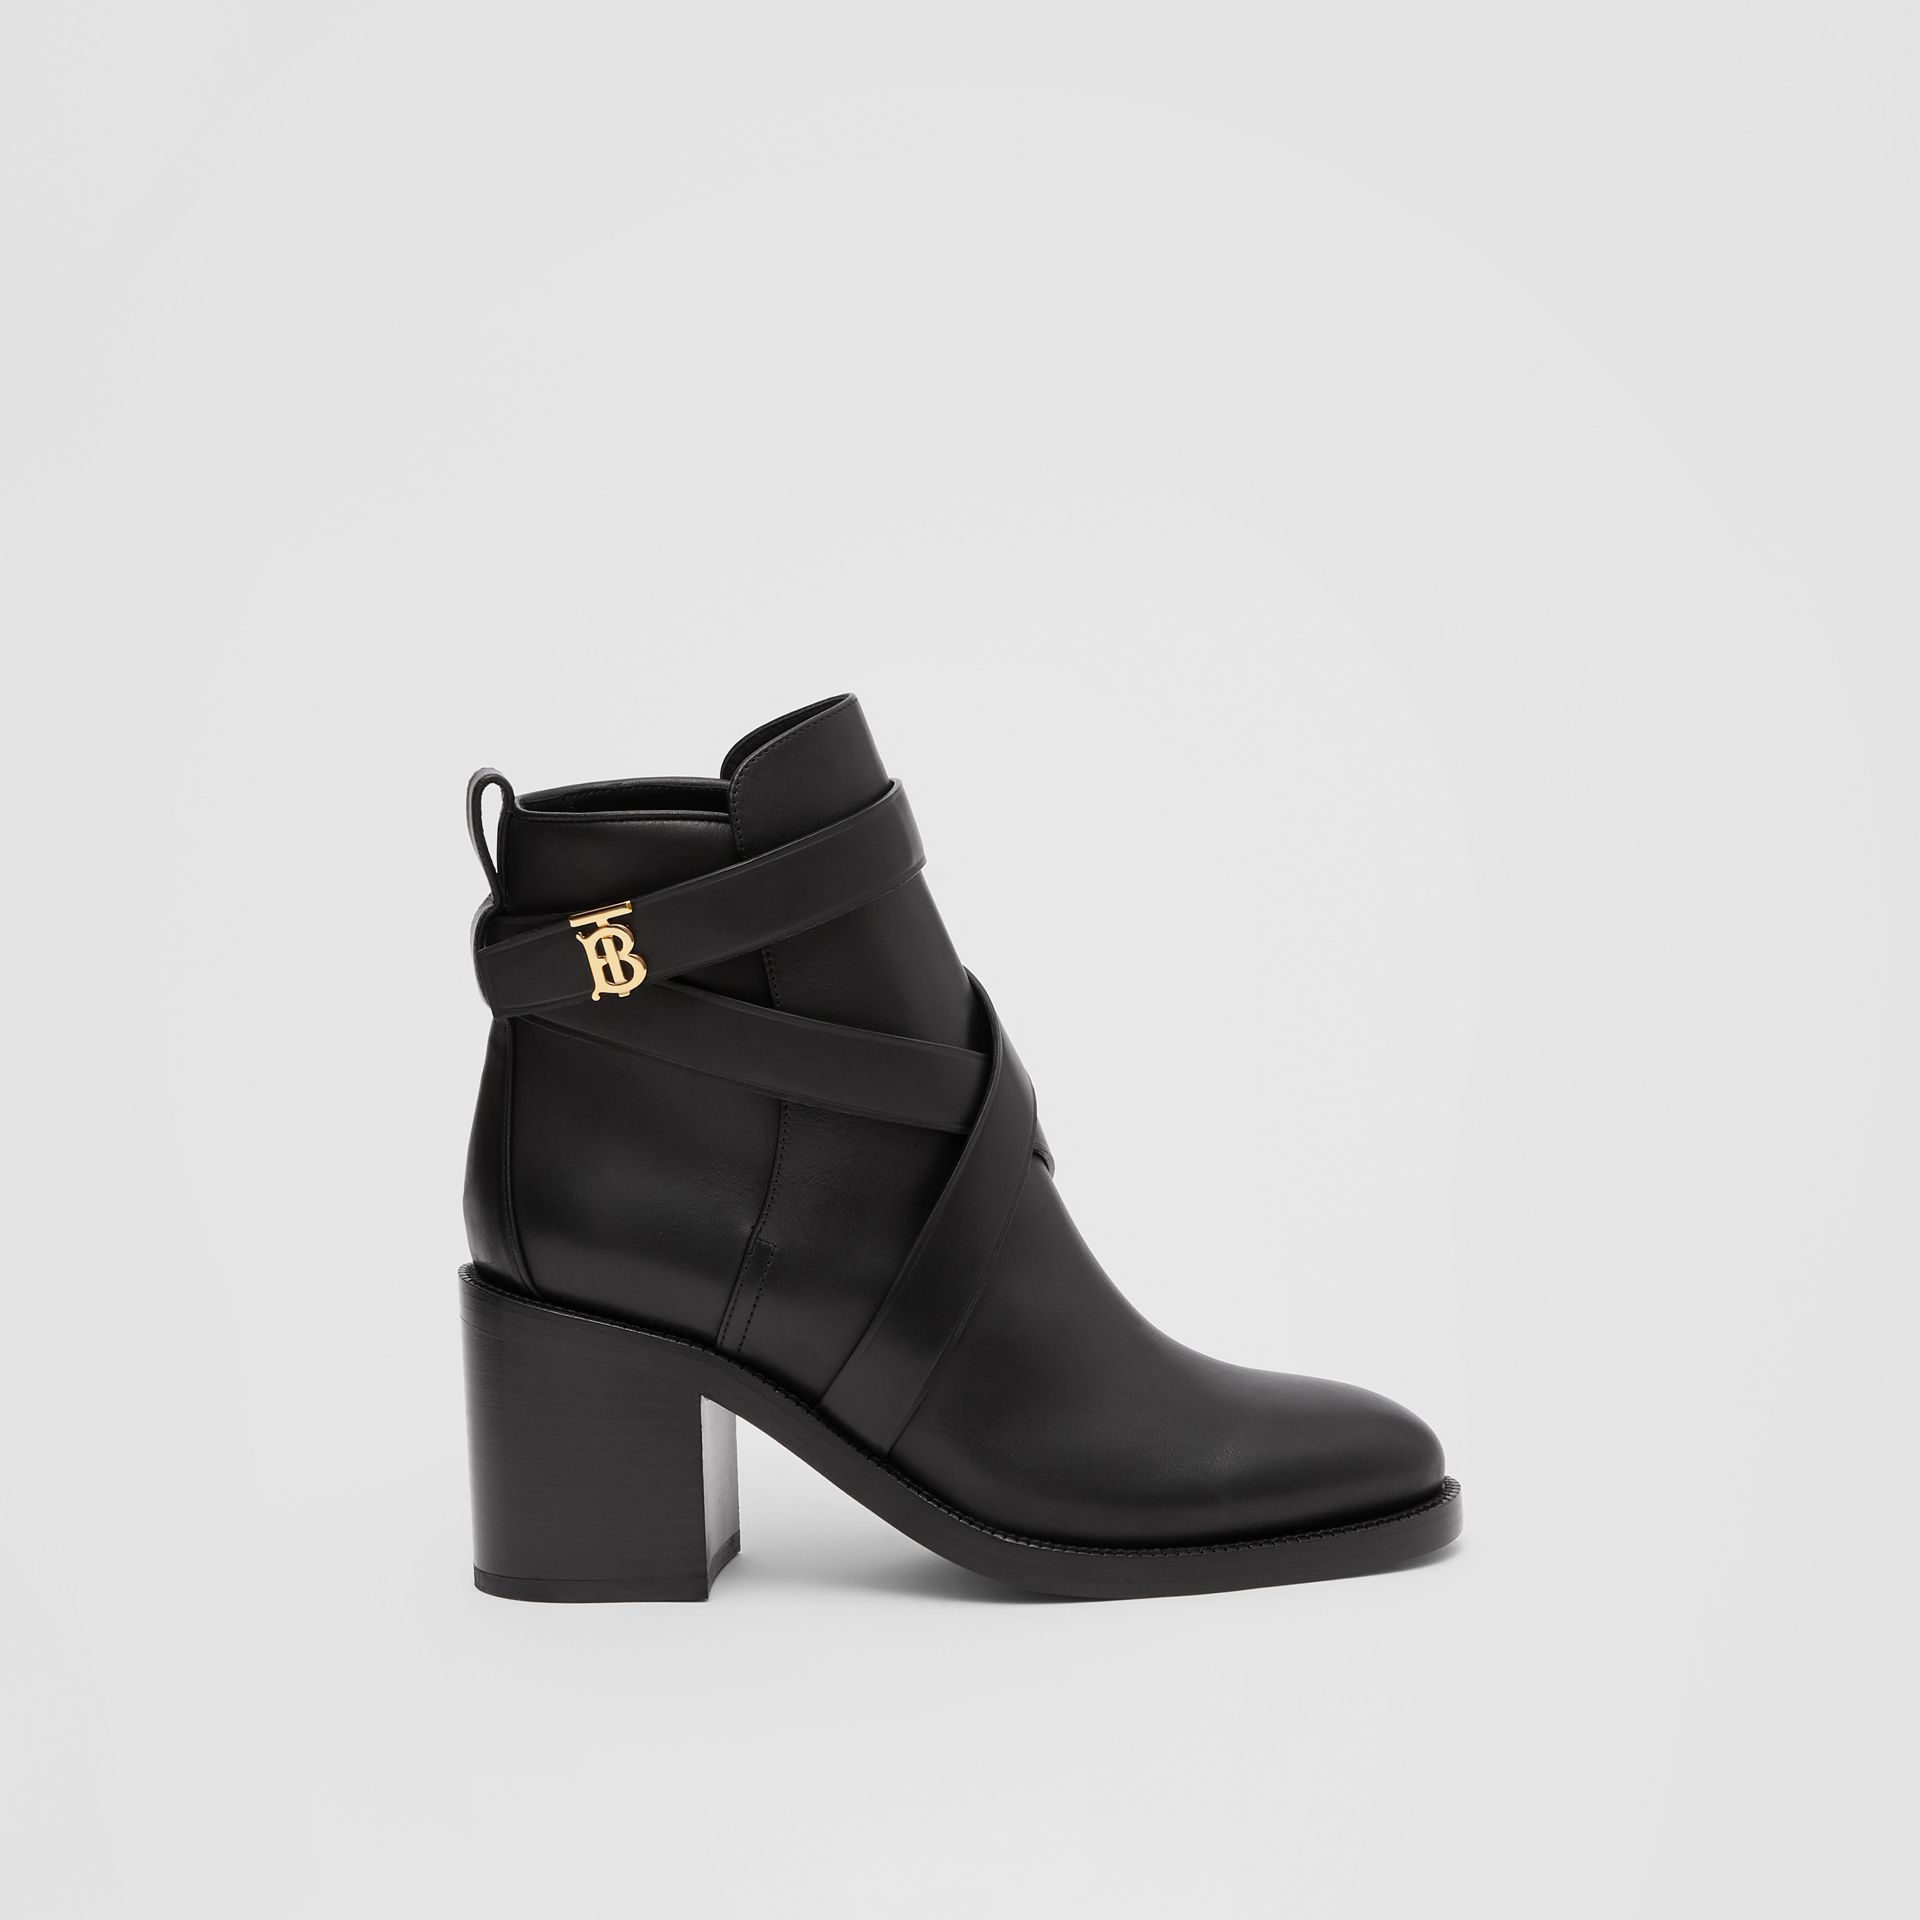 Monogram Motif Leather Ankle Boots in Black - Women | Burberry - gallery image 5